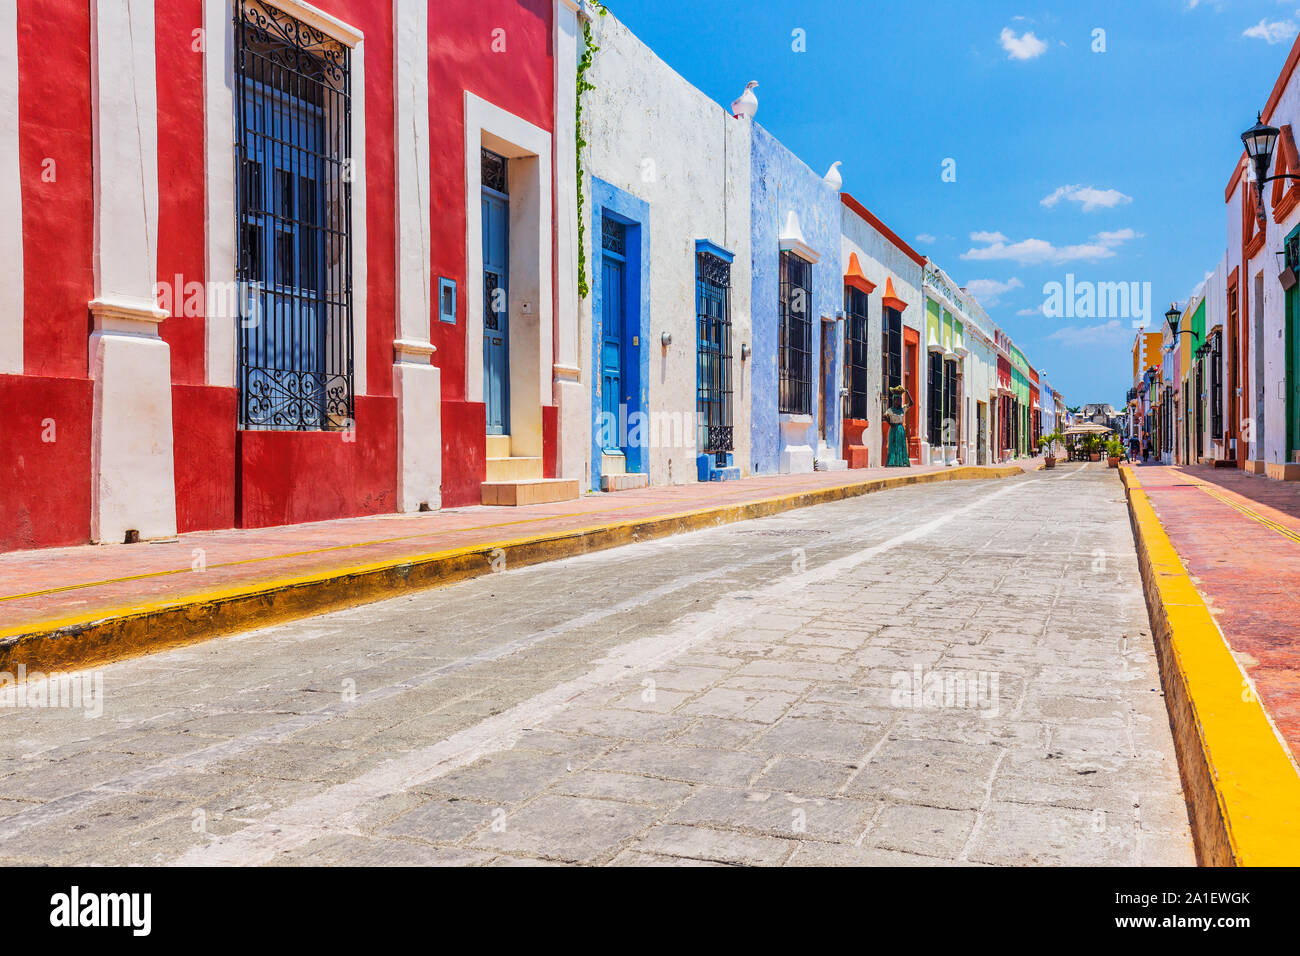 Campeche, Mexico. Street in the Old Town of San Francisco de Campeche. Stock Photo